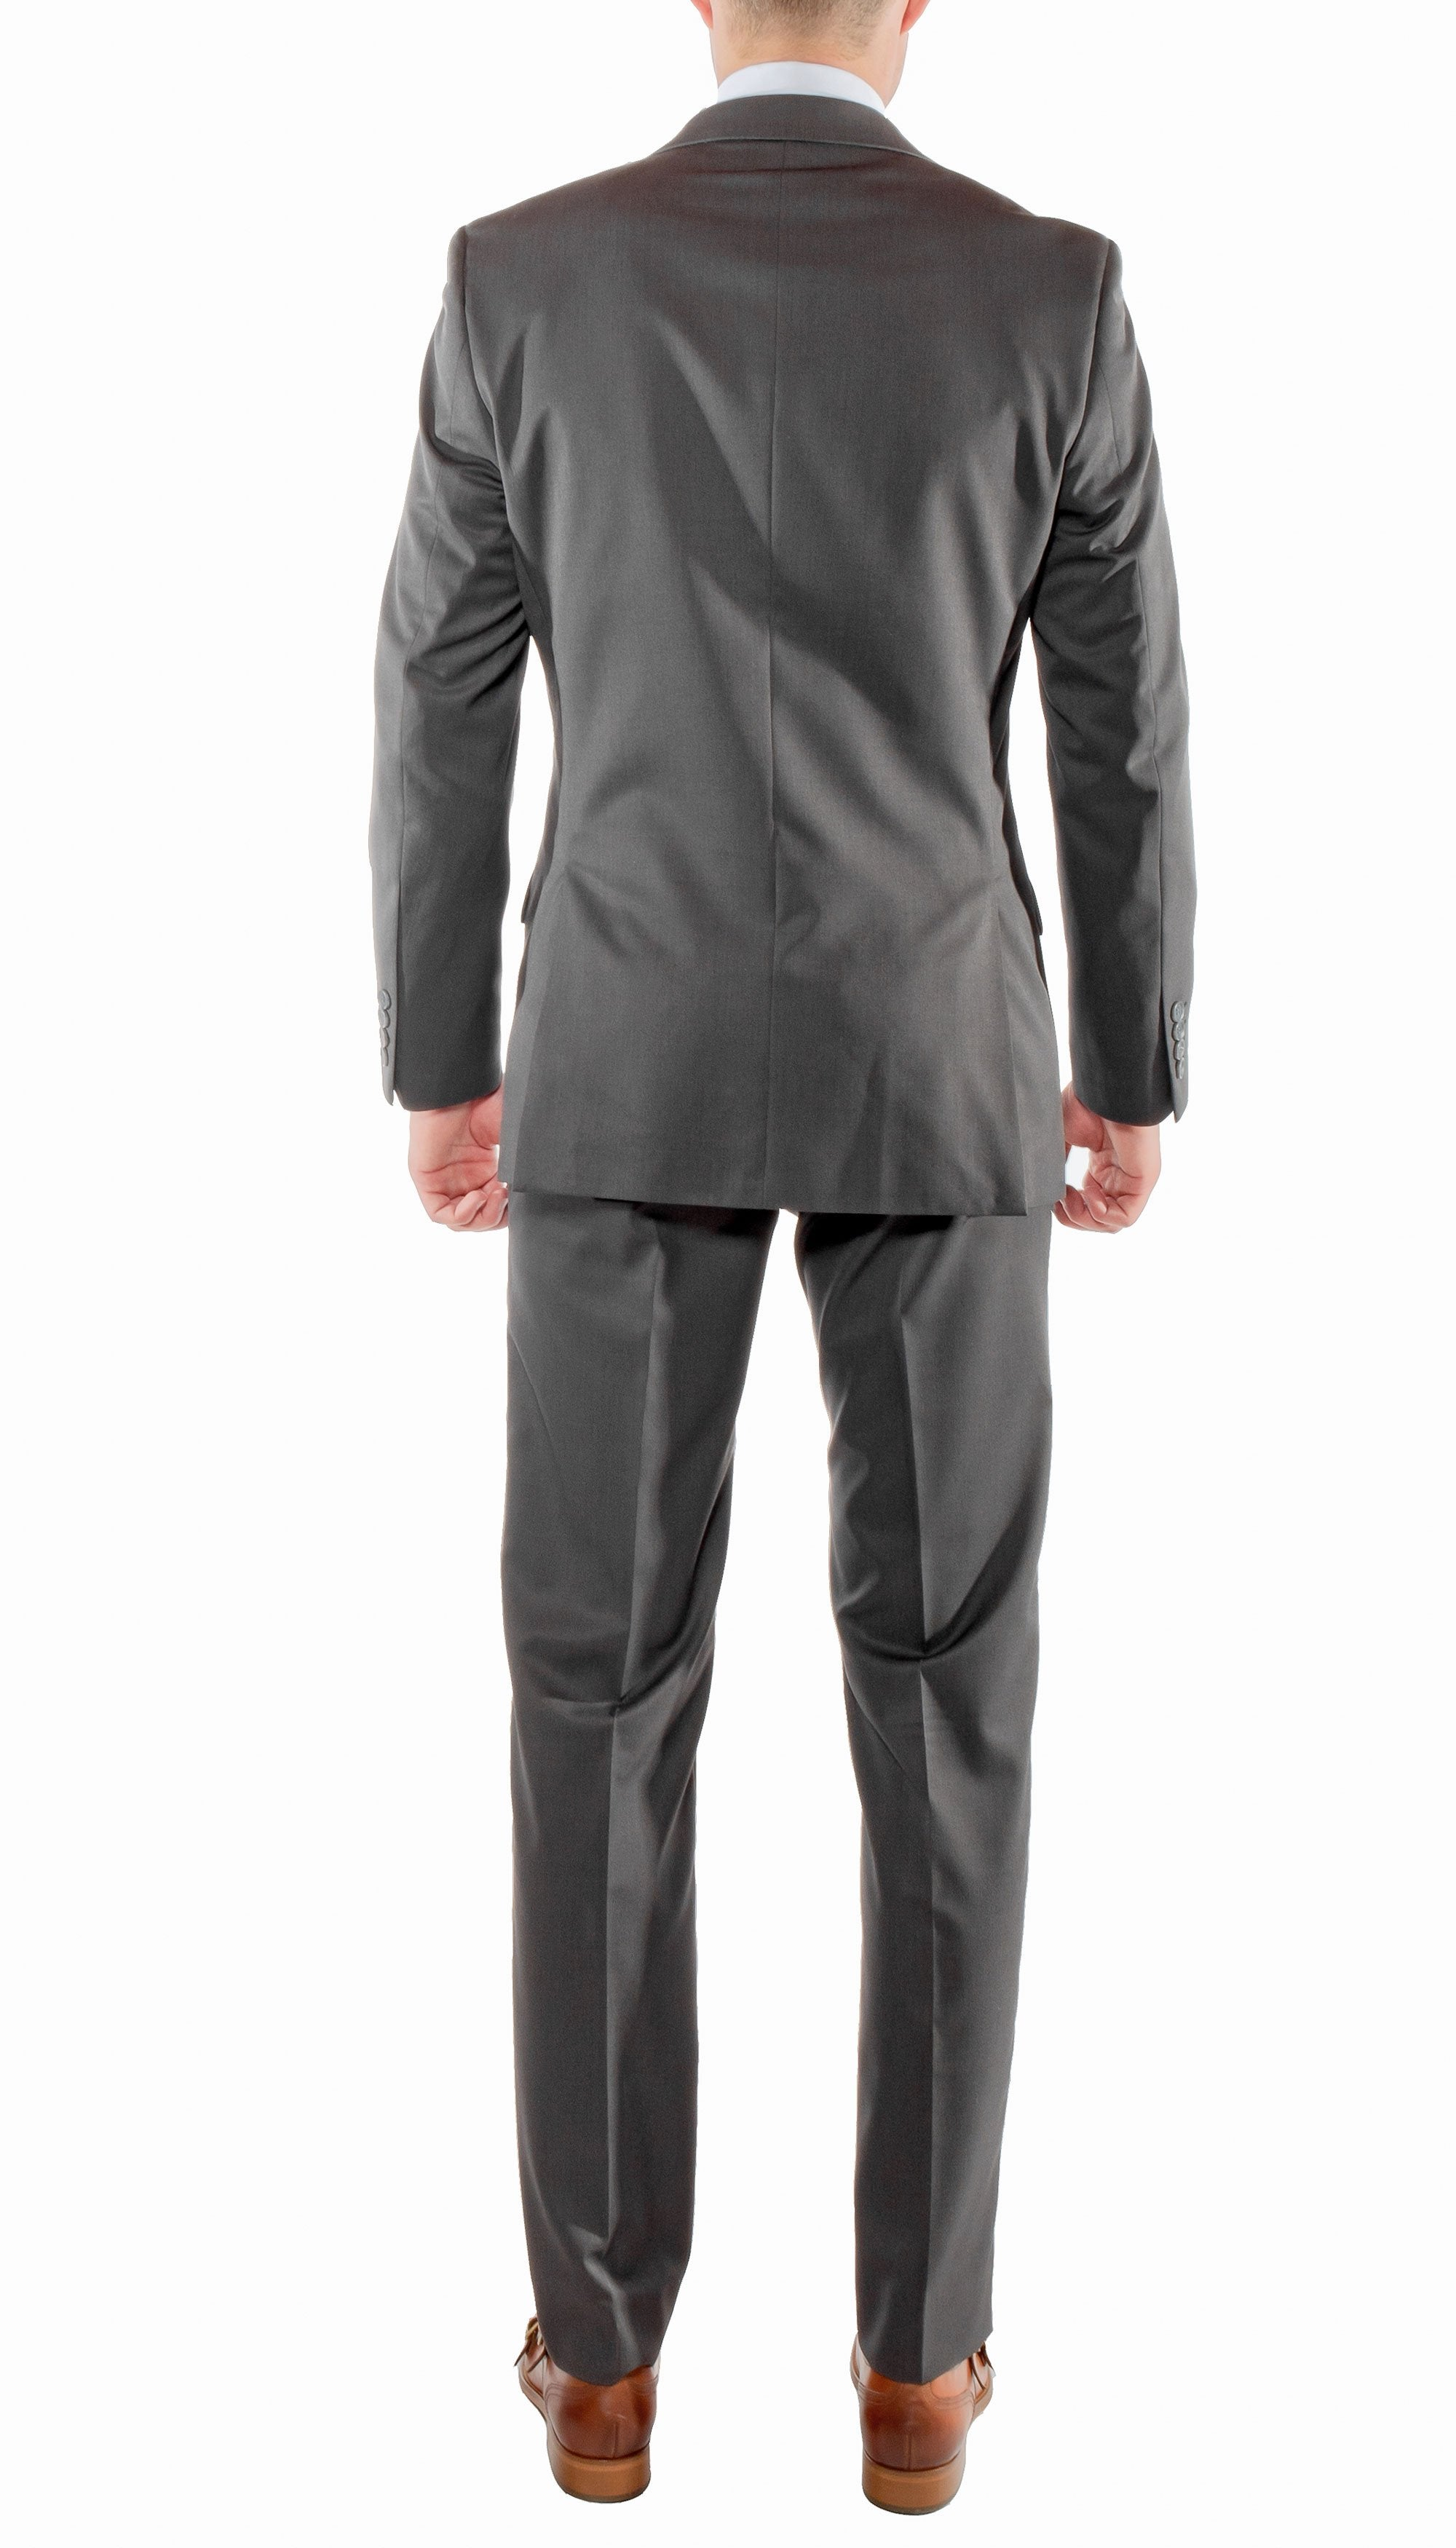 Ferrecci Mens Savannah Charcoal Slim Fit 3pc Suit - Giorgio's Menswear